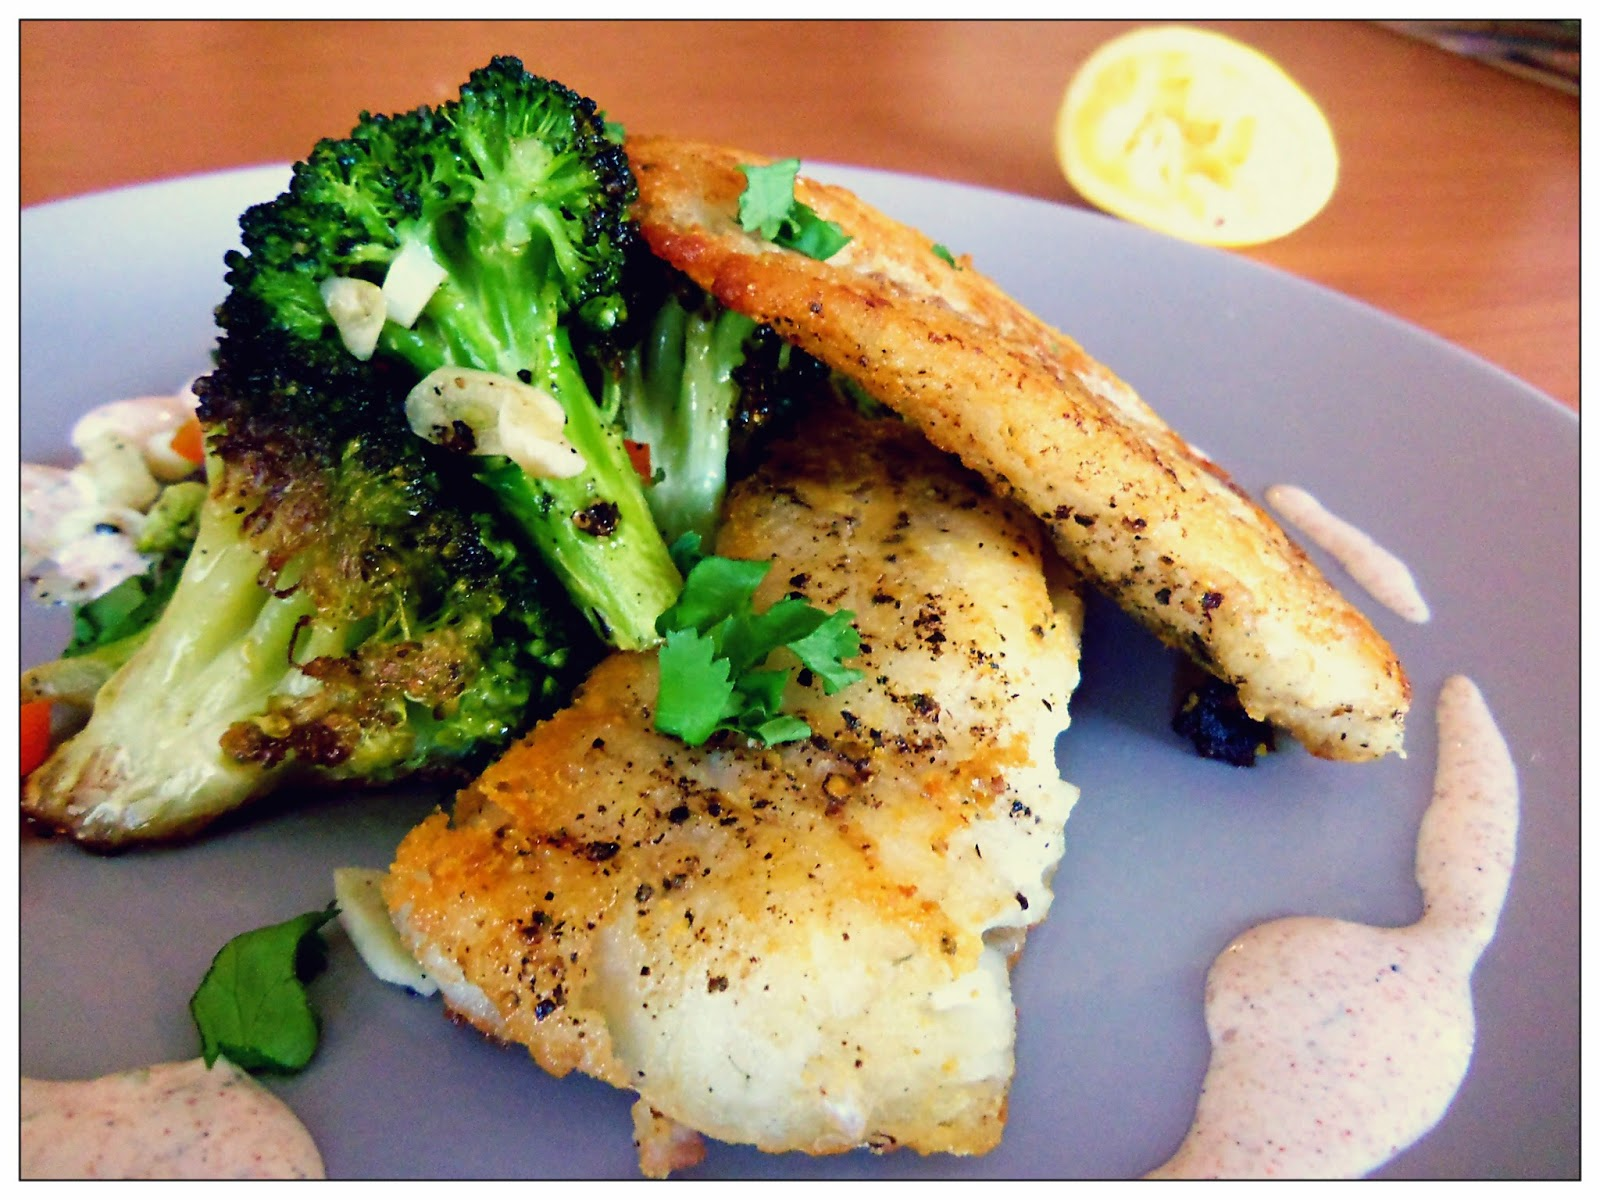 You've Got Meal!: Fried Fish with Blistered Broccoli and